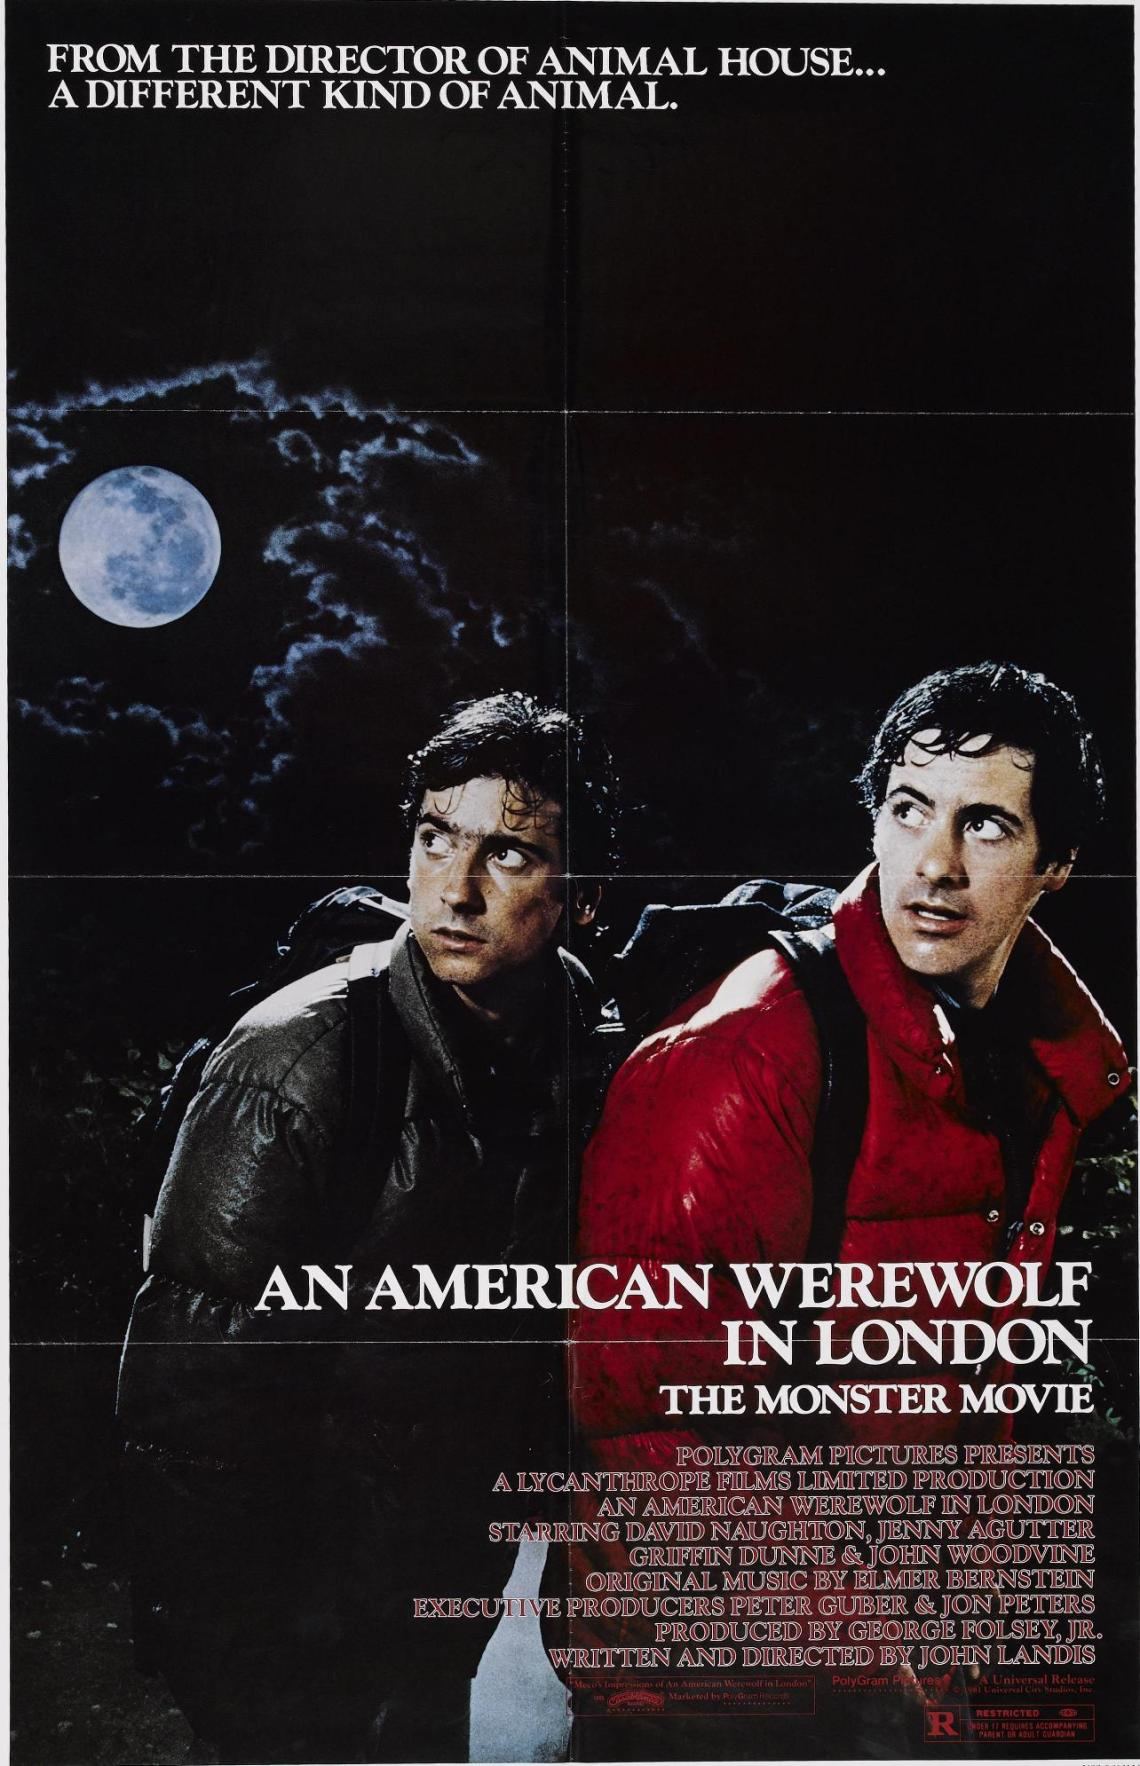 AN AMERICAN WEREWOLF IN LONDON poster 01